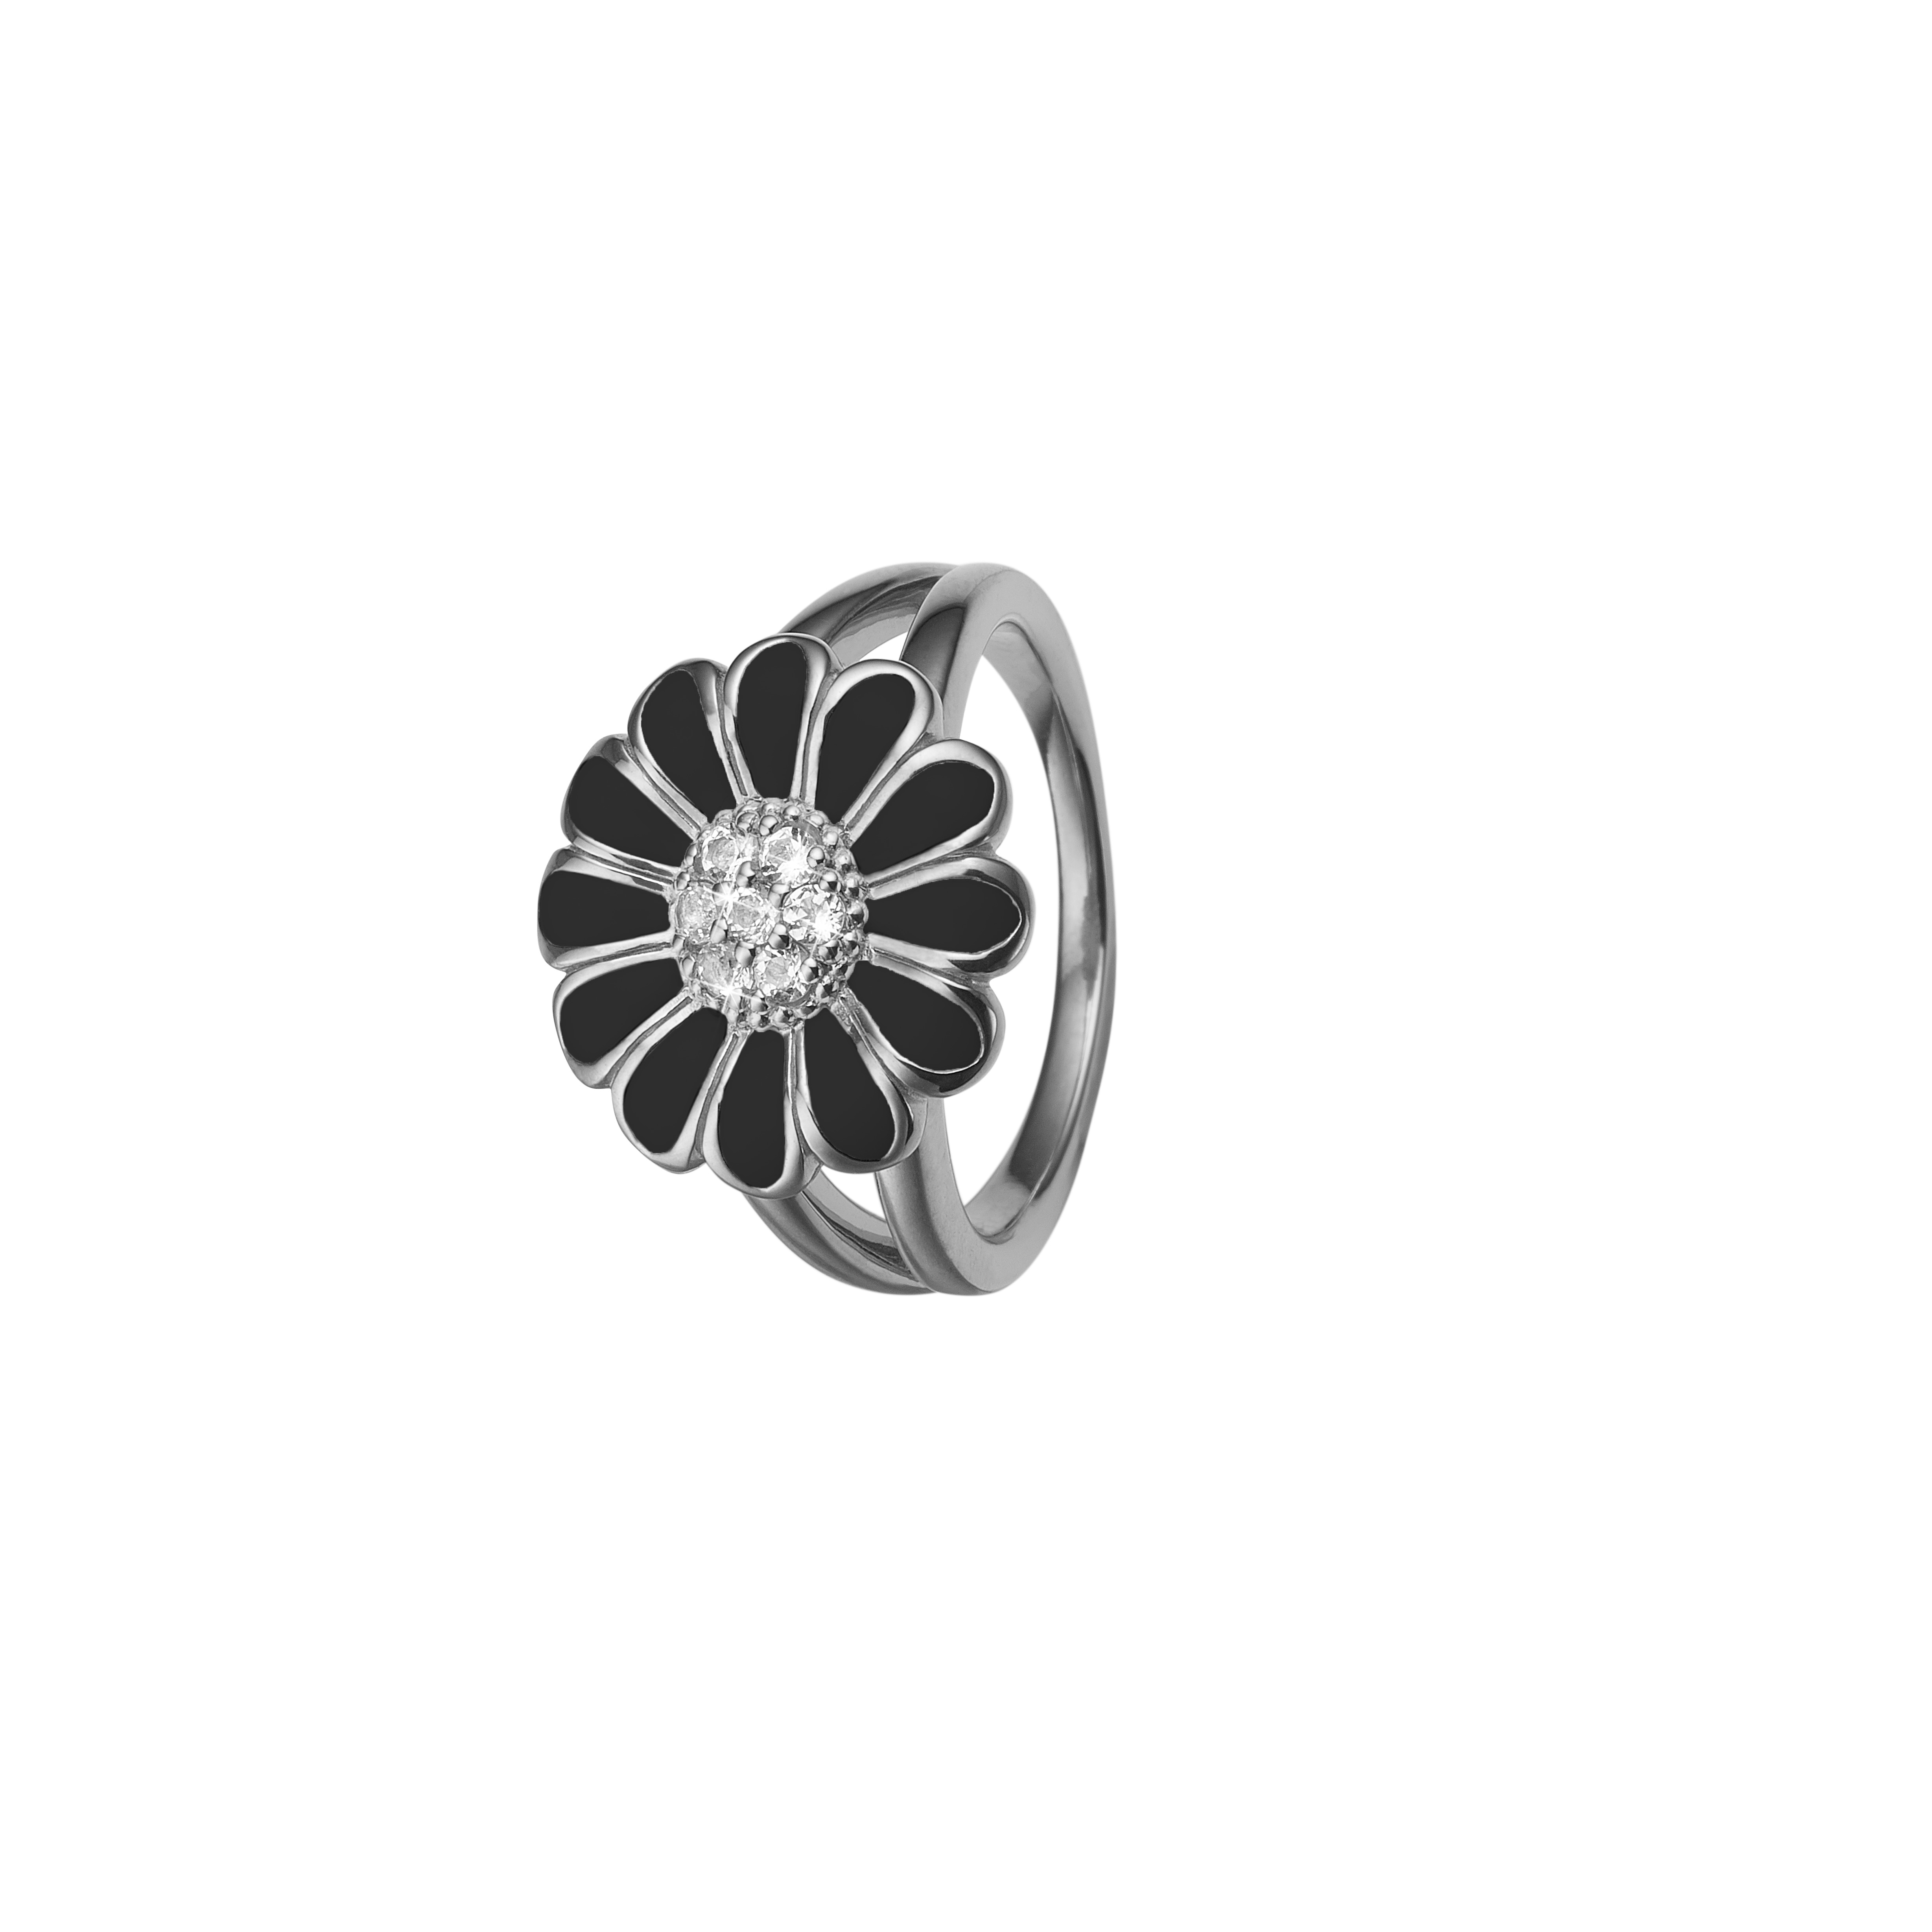 Image of   CHRISTINA Black Marguerit ring 16 mm - 4.5A Størrelse 51